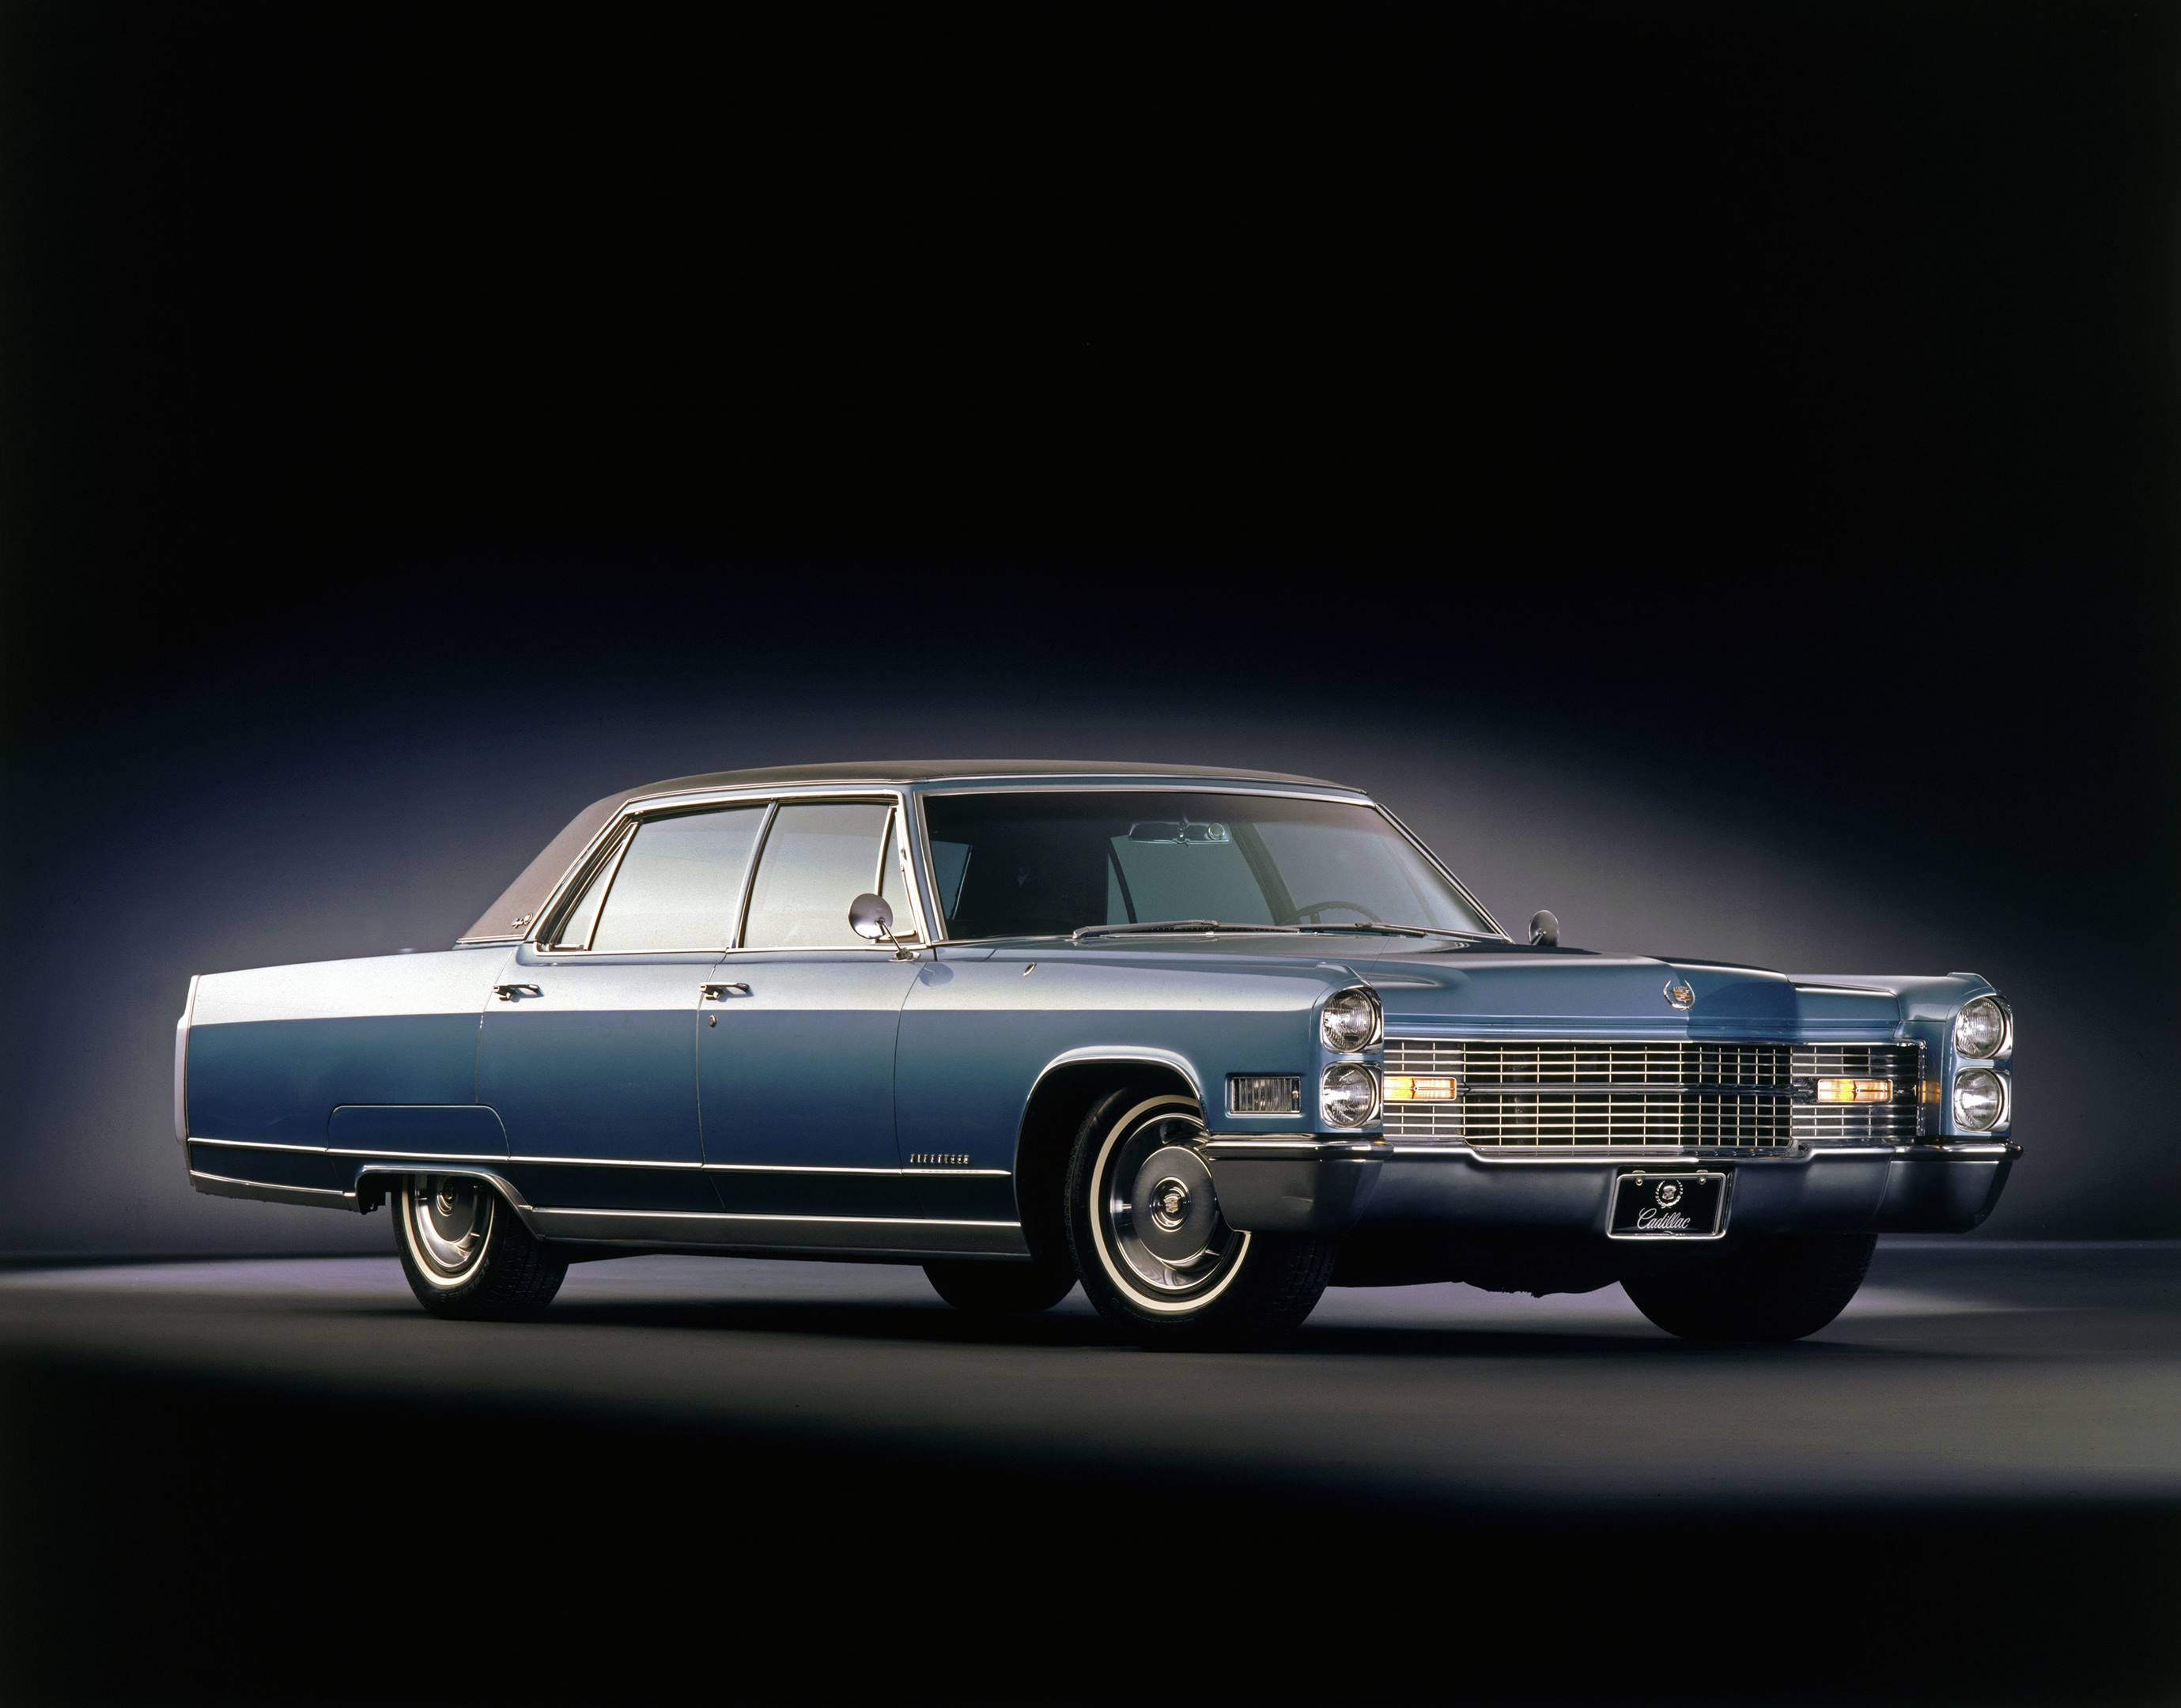 1966 Cadillac Fleetwood RH front corner side view